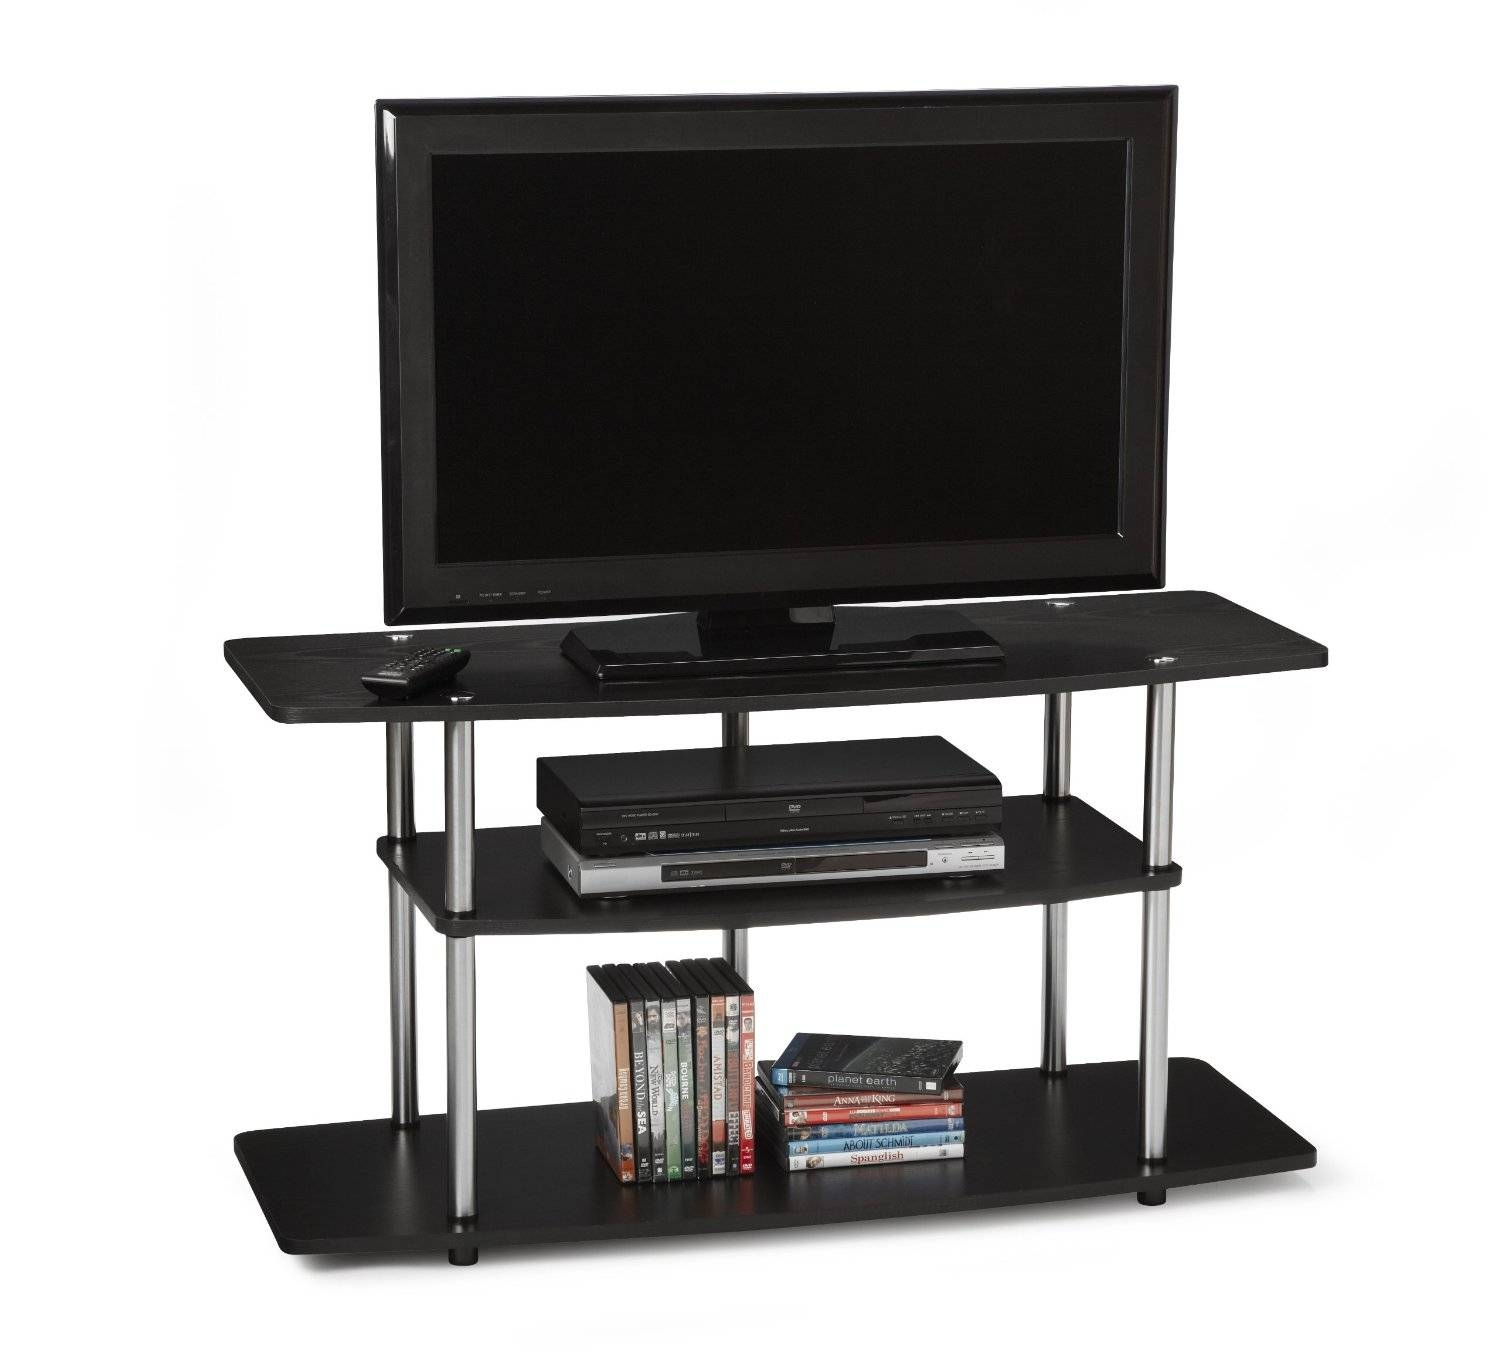 Buying Guide For Small Tv Stands – Furniture Depot With Regard To Tv Stands For Small Spaces (View 3 of 15)